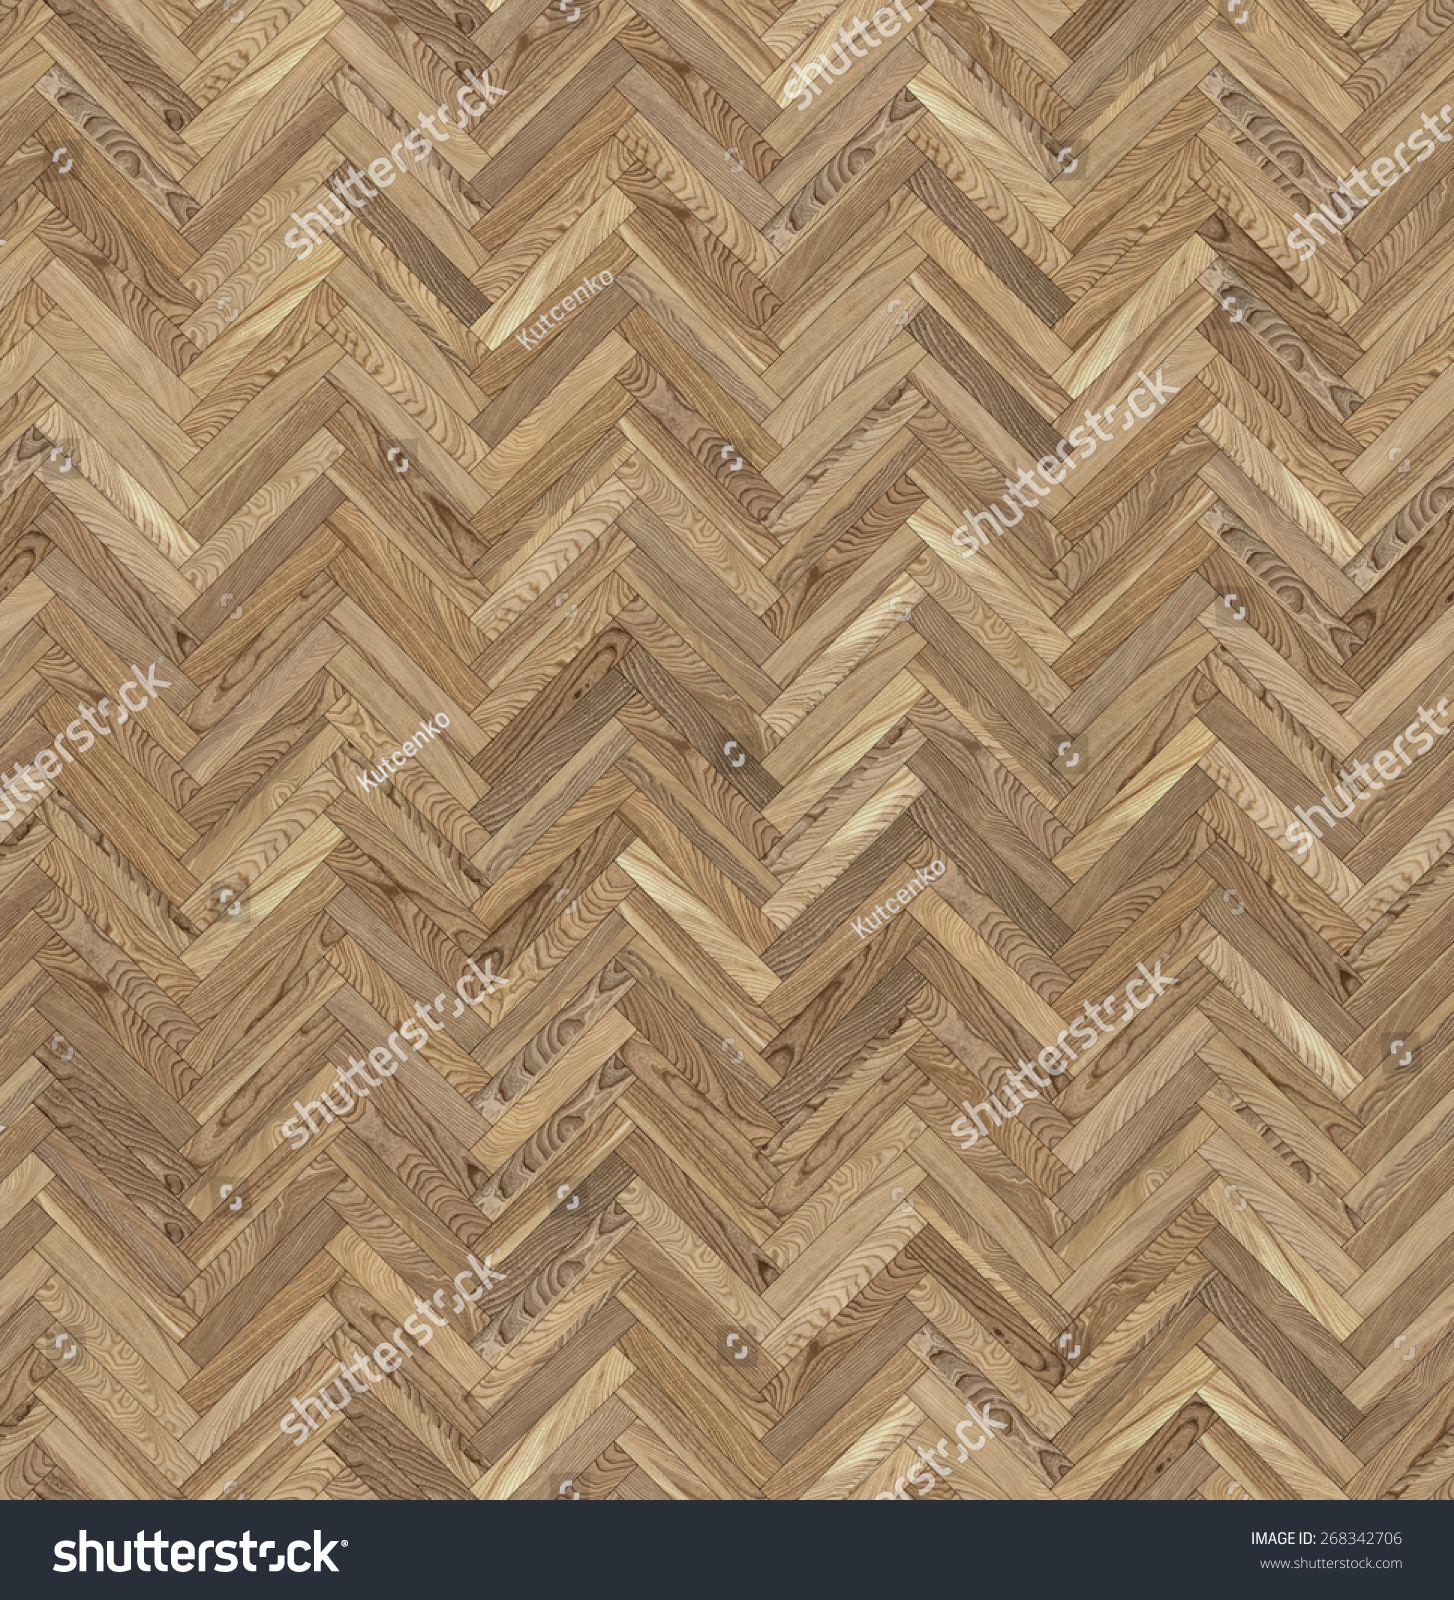 wooden and laminate